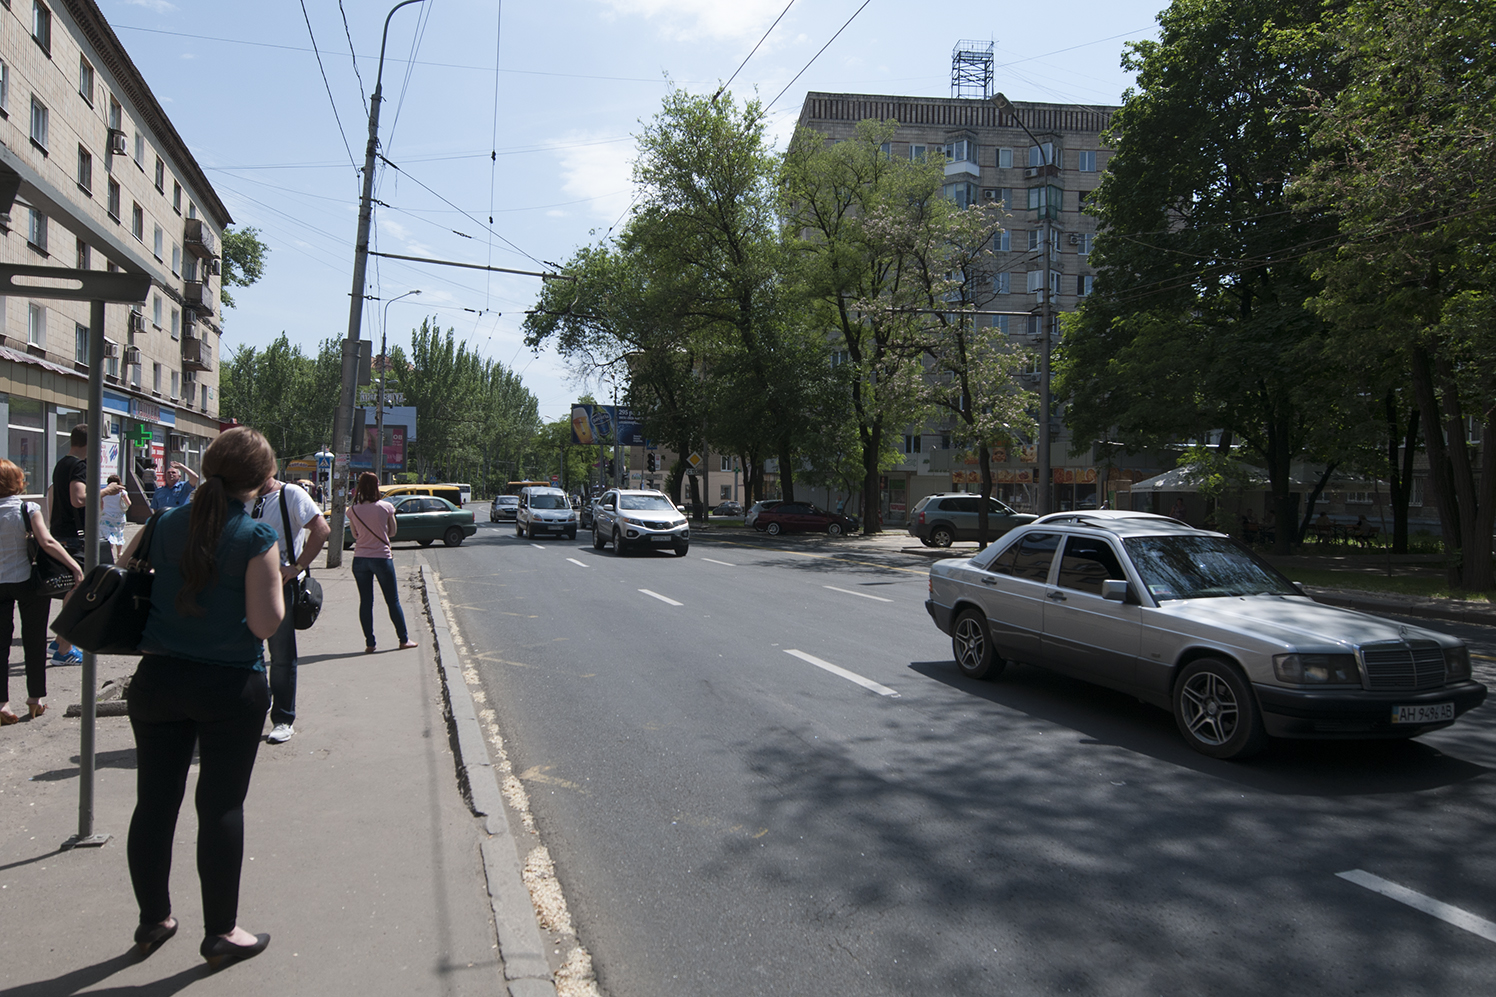 People waiting for the bus as the sound of the airport's bombing resound in the street of Donetsk